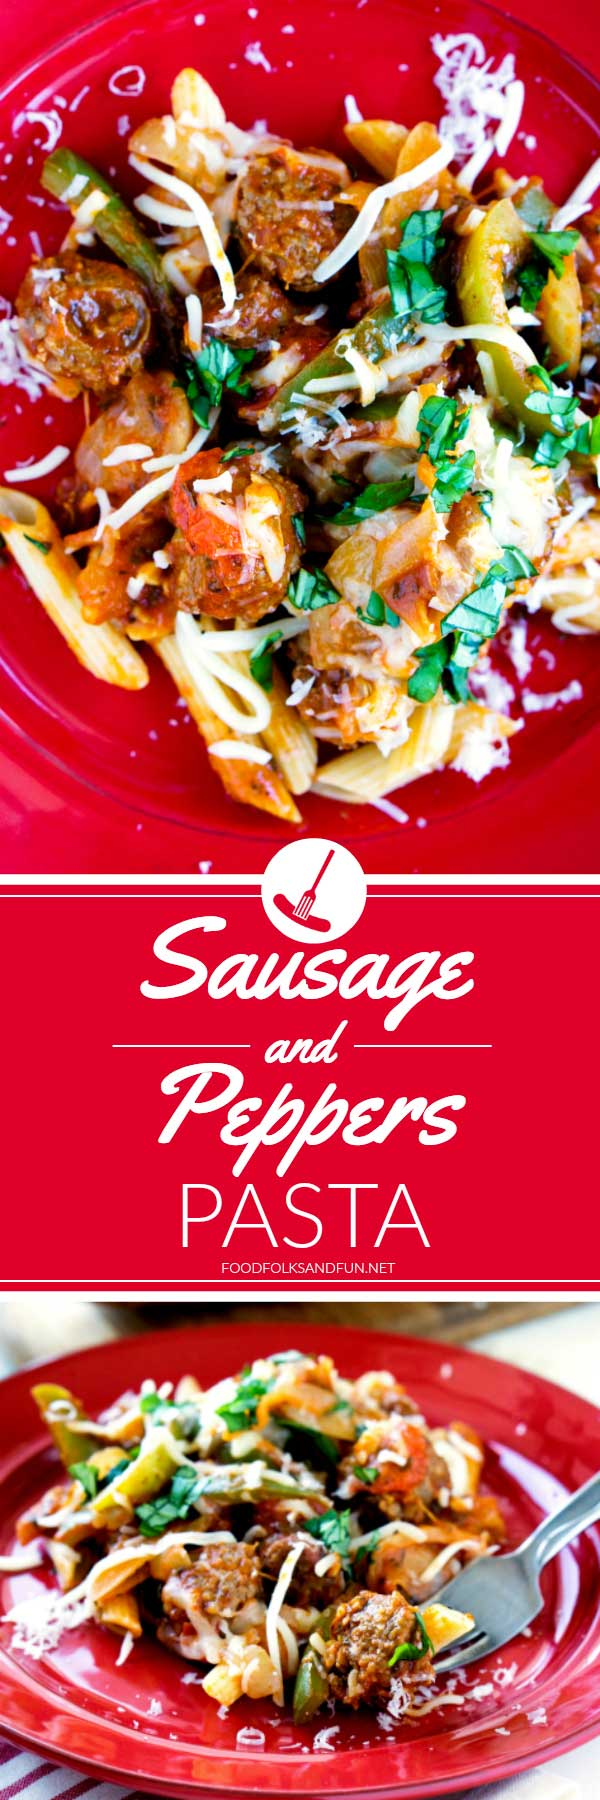 Picture collage of sausage and peppers pasta.